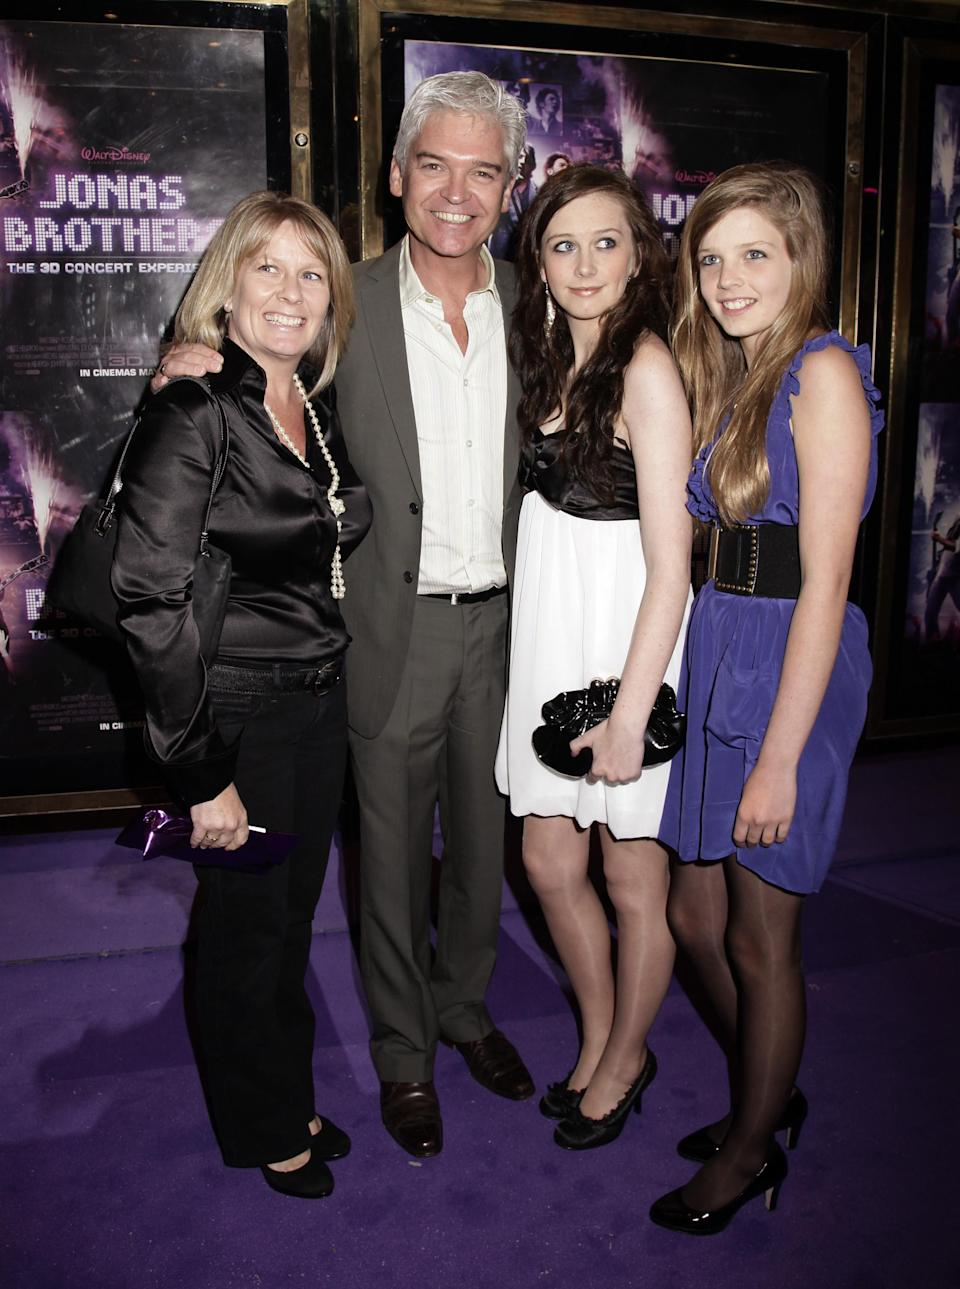 """File photo dated 13/05/09 of Phillip Schofield and family arriving for the premiere of 'Jonas Brothers: The 3D Concert Experience' at the Empire cinema in Leicester Square, London. Phillip Schofield has said he is """"coming to terms with the fact I am gay"""" in a statement on Instagram."""